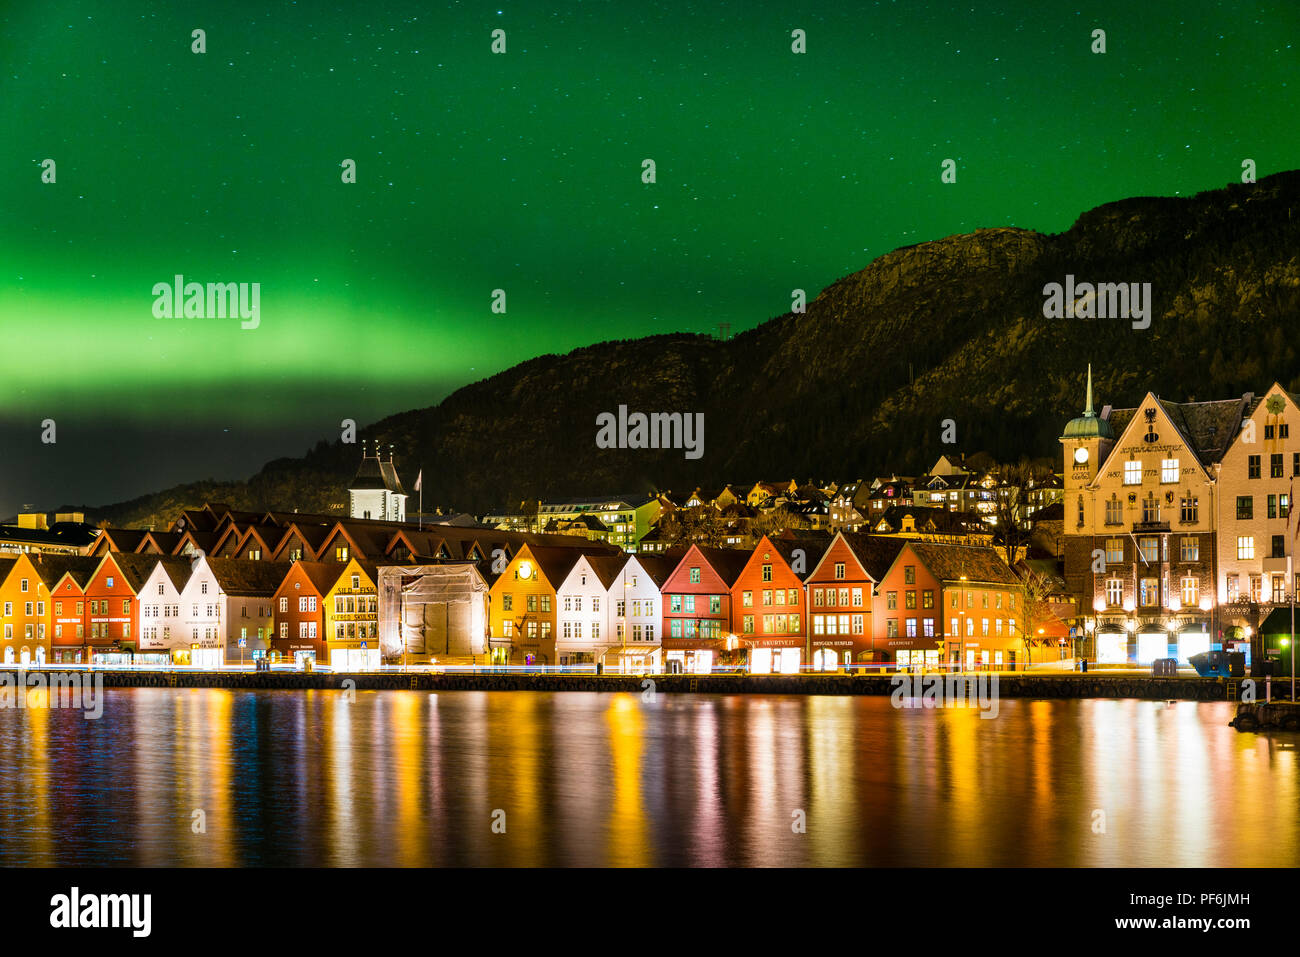 Northern Lights over the historical buildings on Bryggen in Bergen, on the Unesco world heritage list. - Stock Image